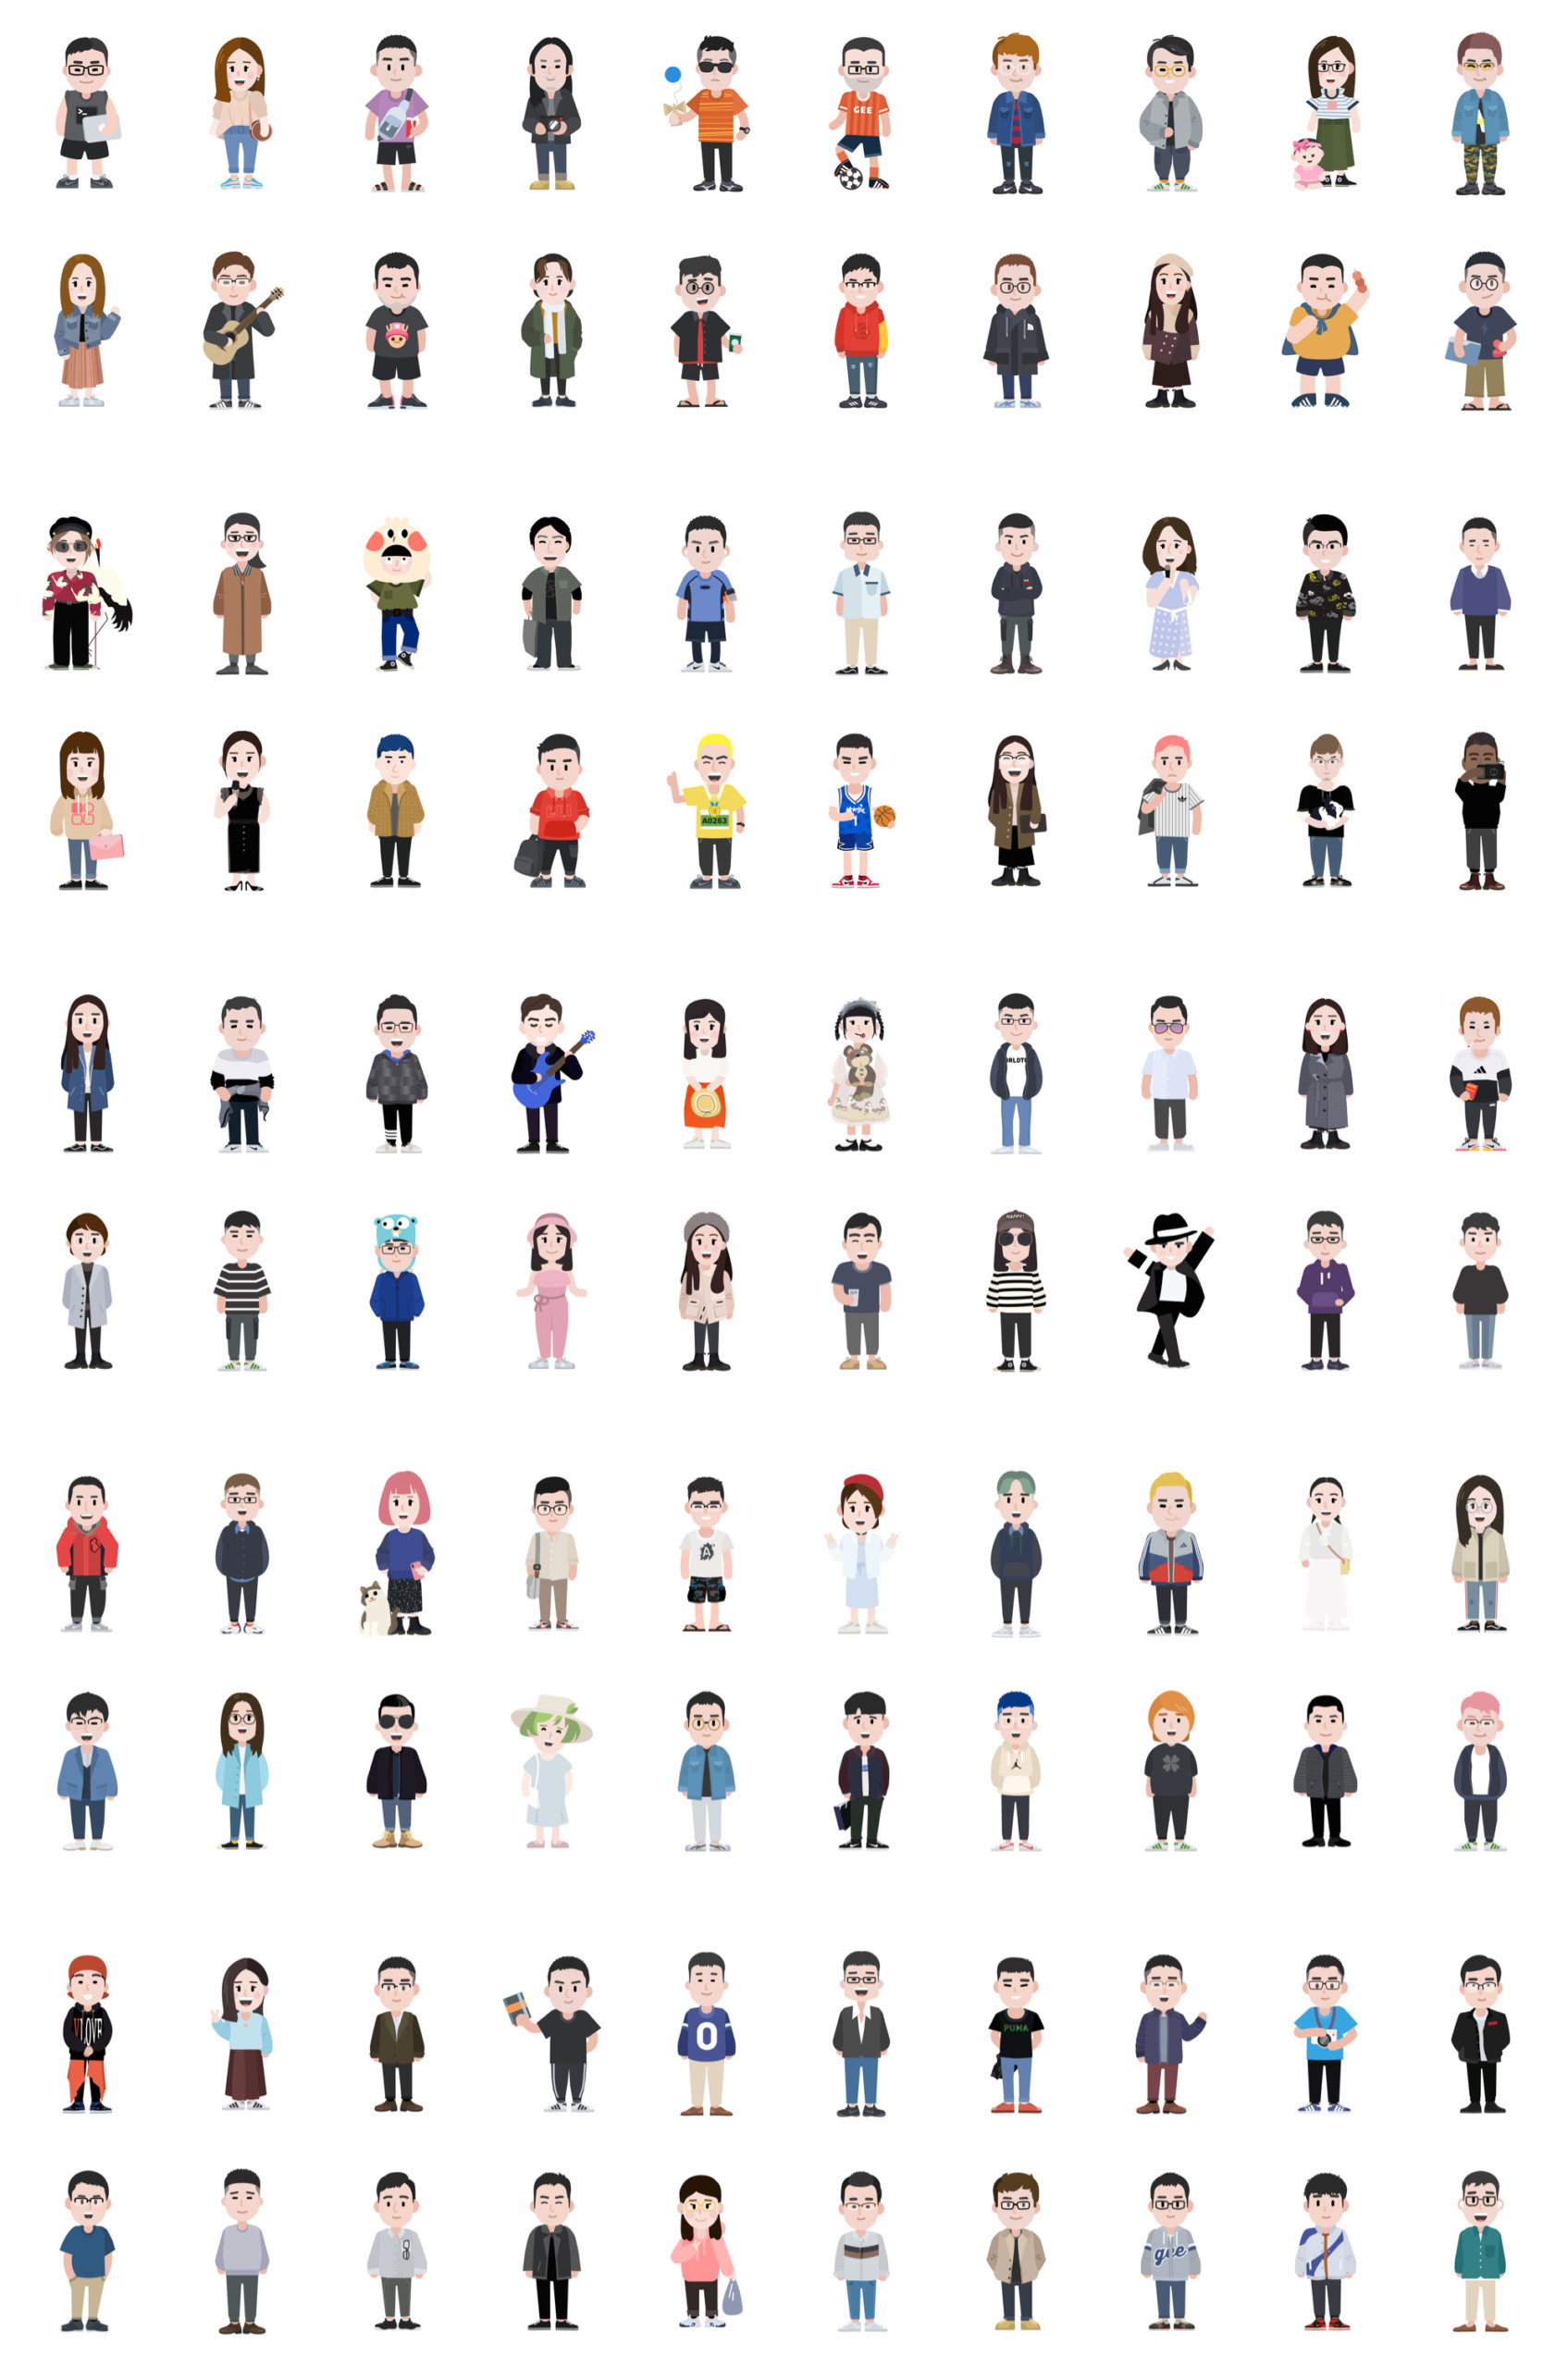 GEE! ME - 100 Illustration Characters from UIGarage